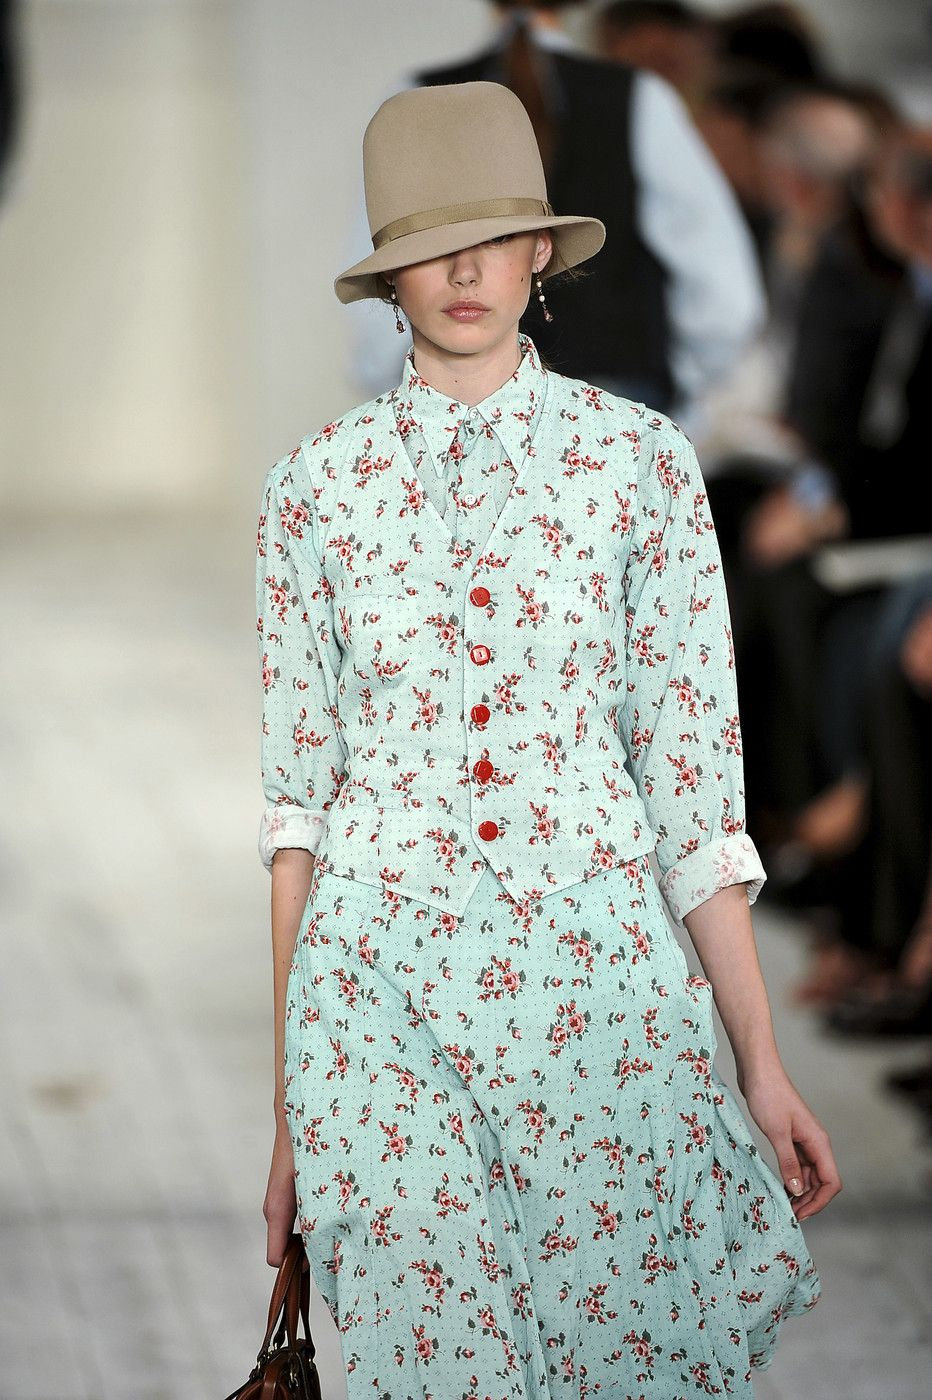 Ralph Lauren at New York Fashion Week Spring 2010 - Livingly 91847312b31aa